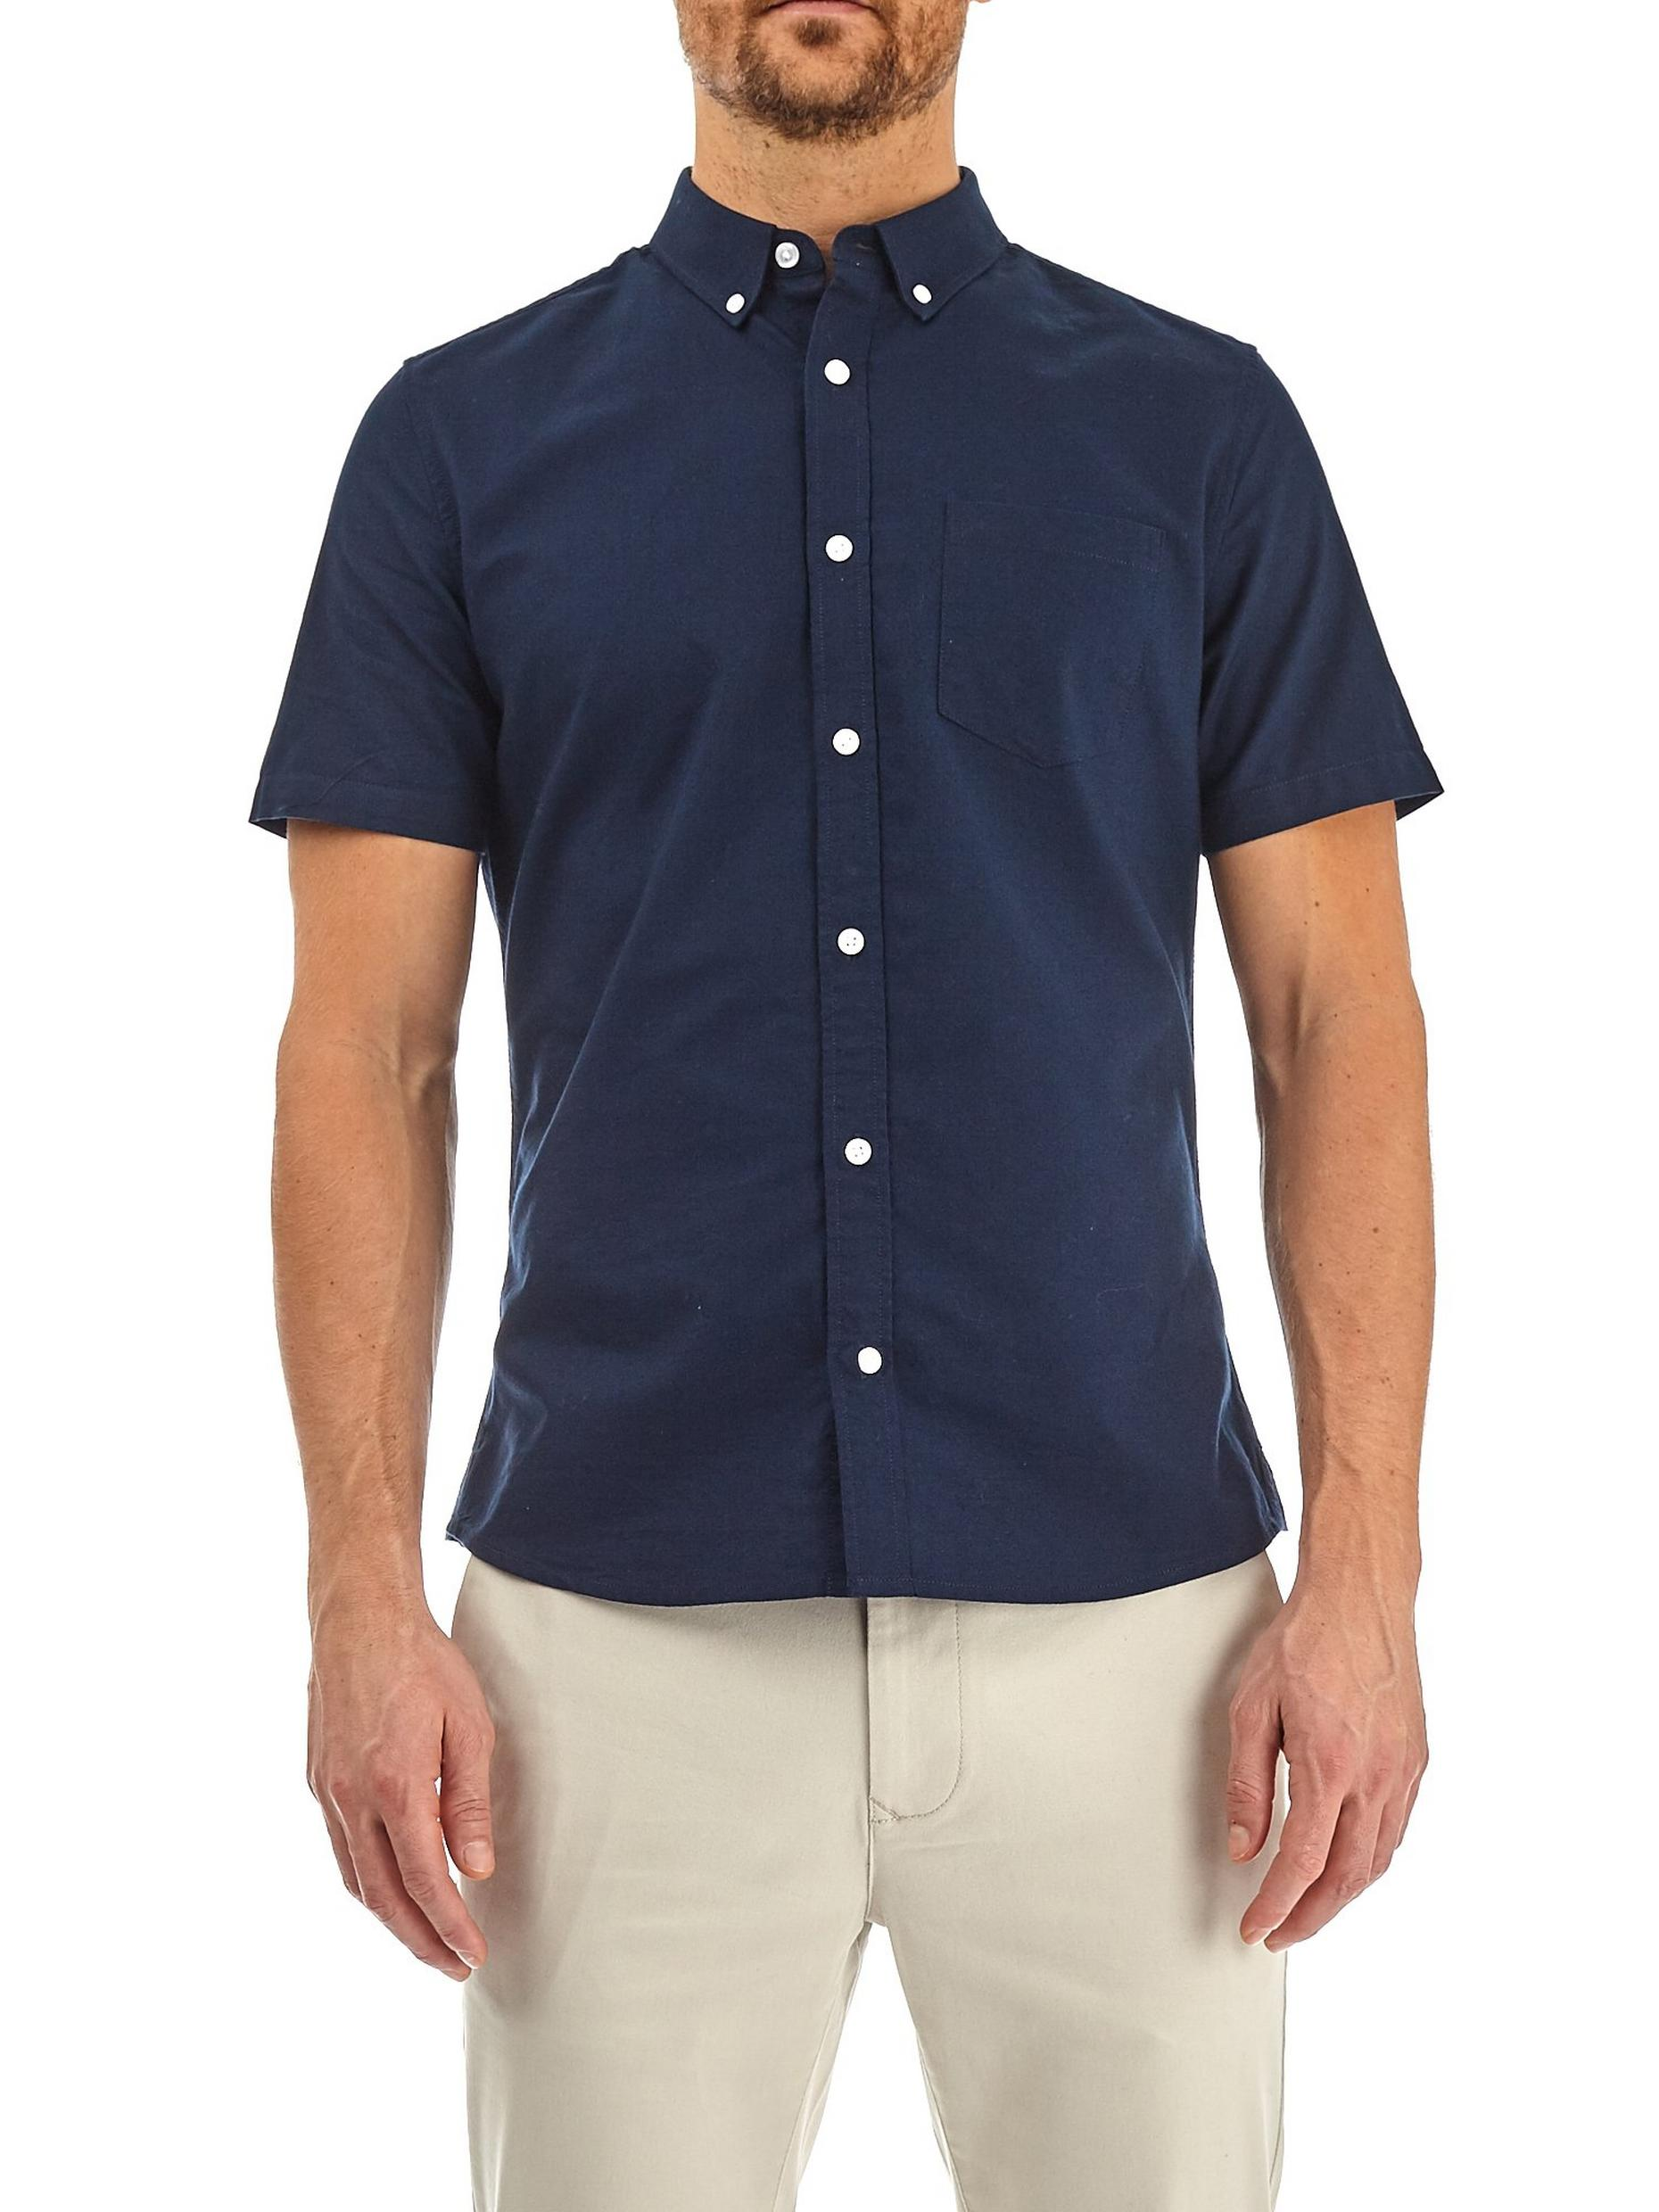 Navy Short Sleeve Oxford Shirt